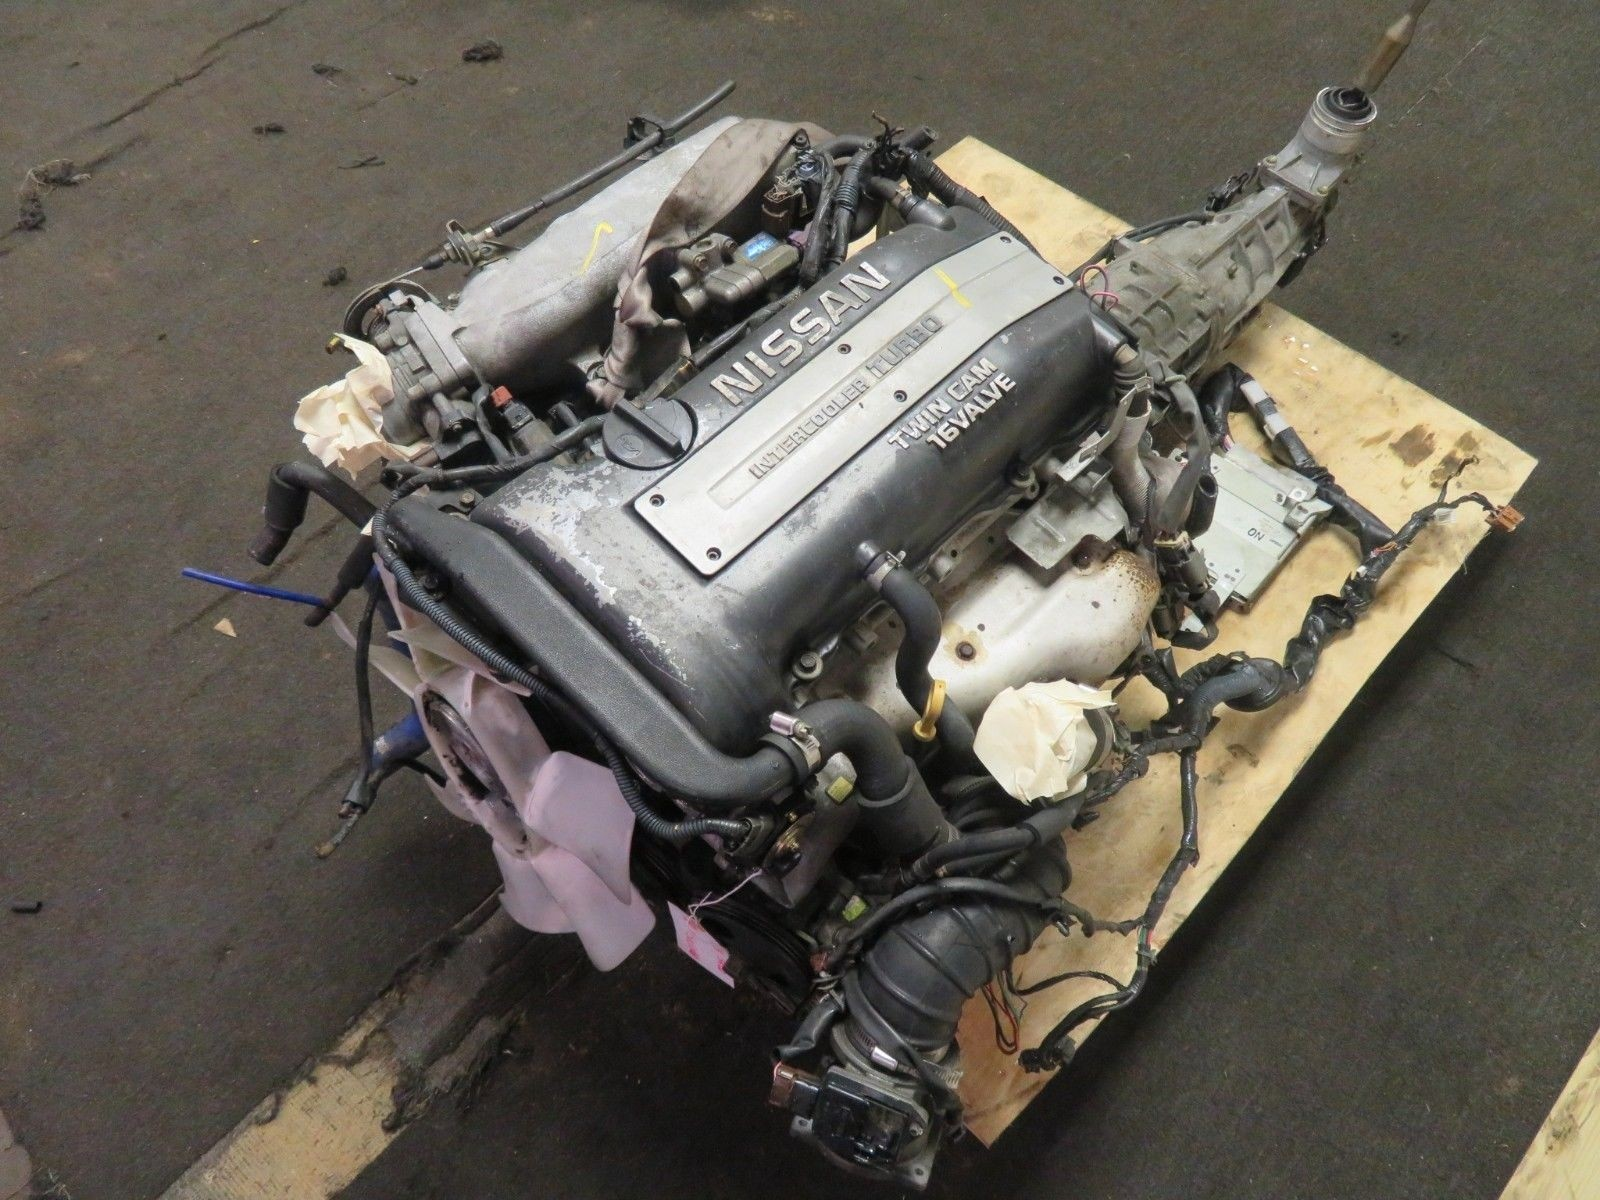 98-02 JDM NISSAN SILVIA S15 SR20DET 2.0L TURBO ENGINE, 6 SPEED TRANSMISSION, WIRING, ECU